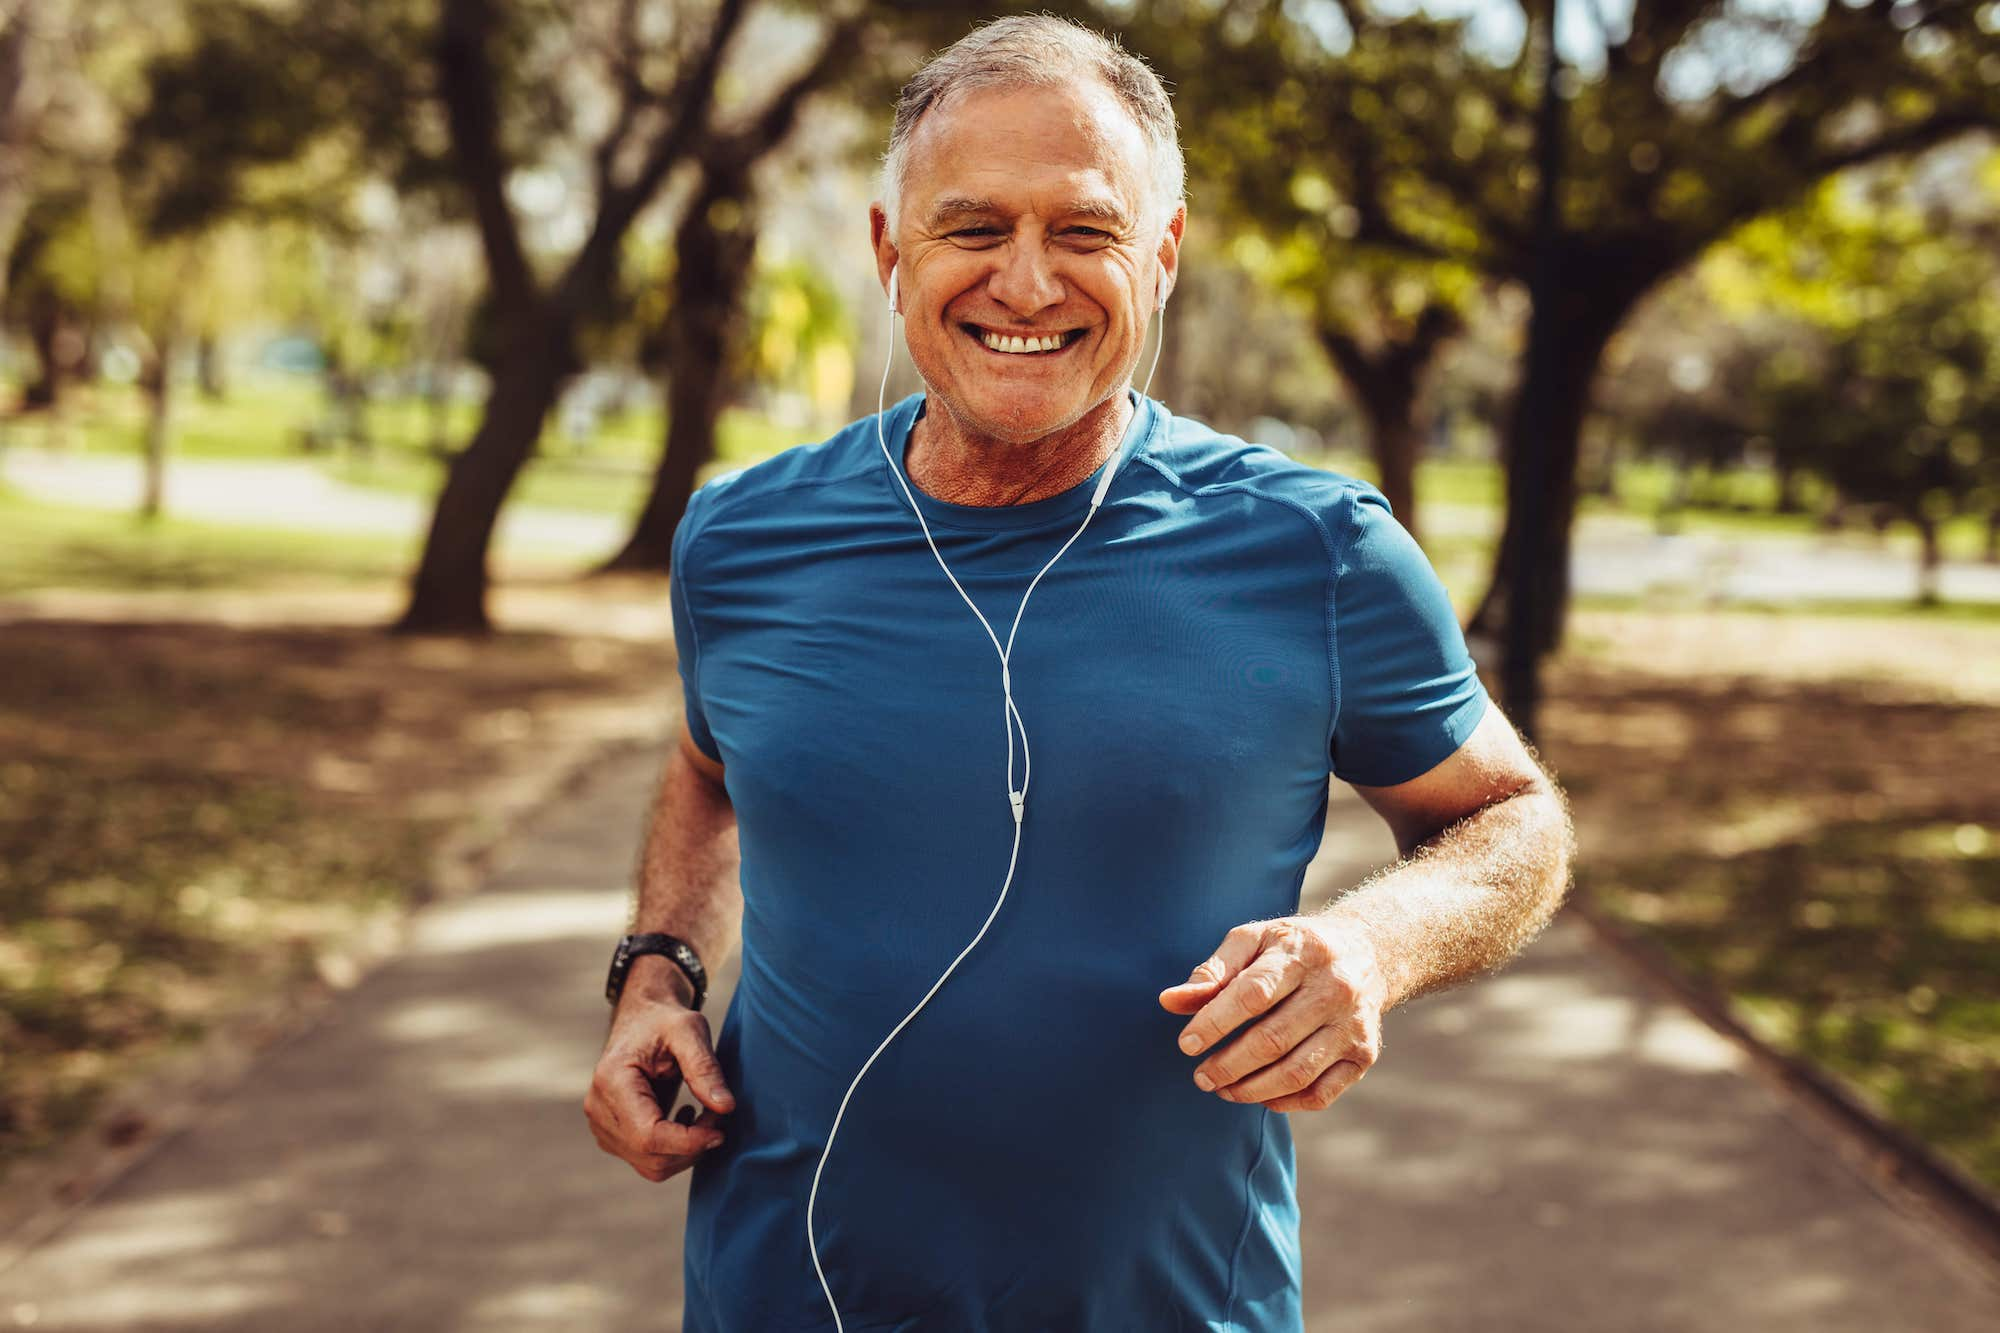 An elderly man is jogging and smiling, he is listening to music as he exercises